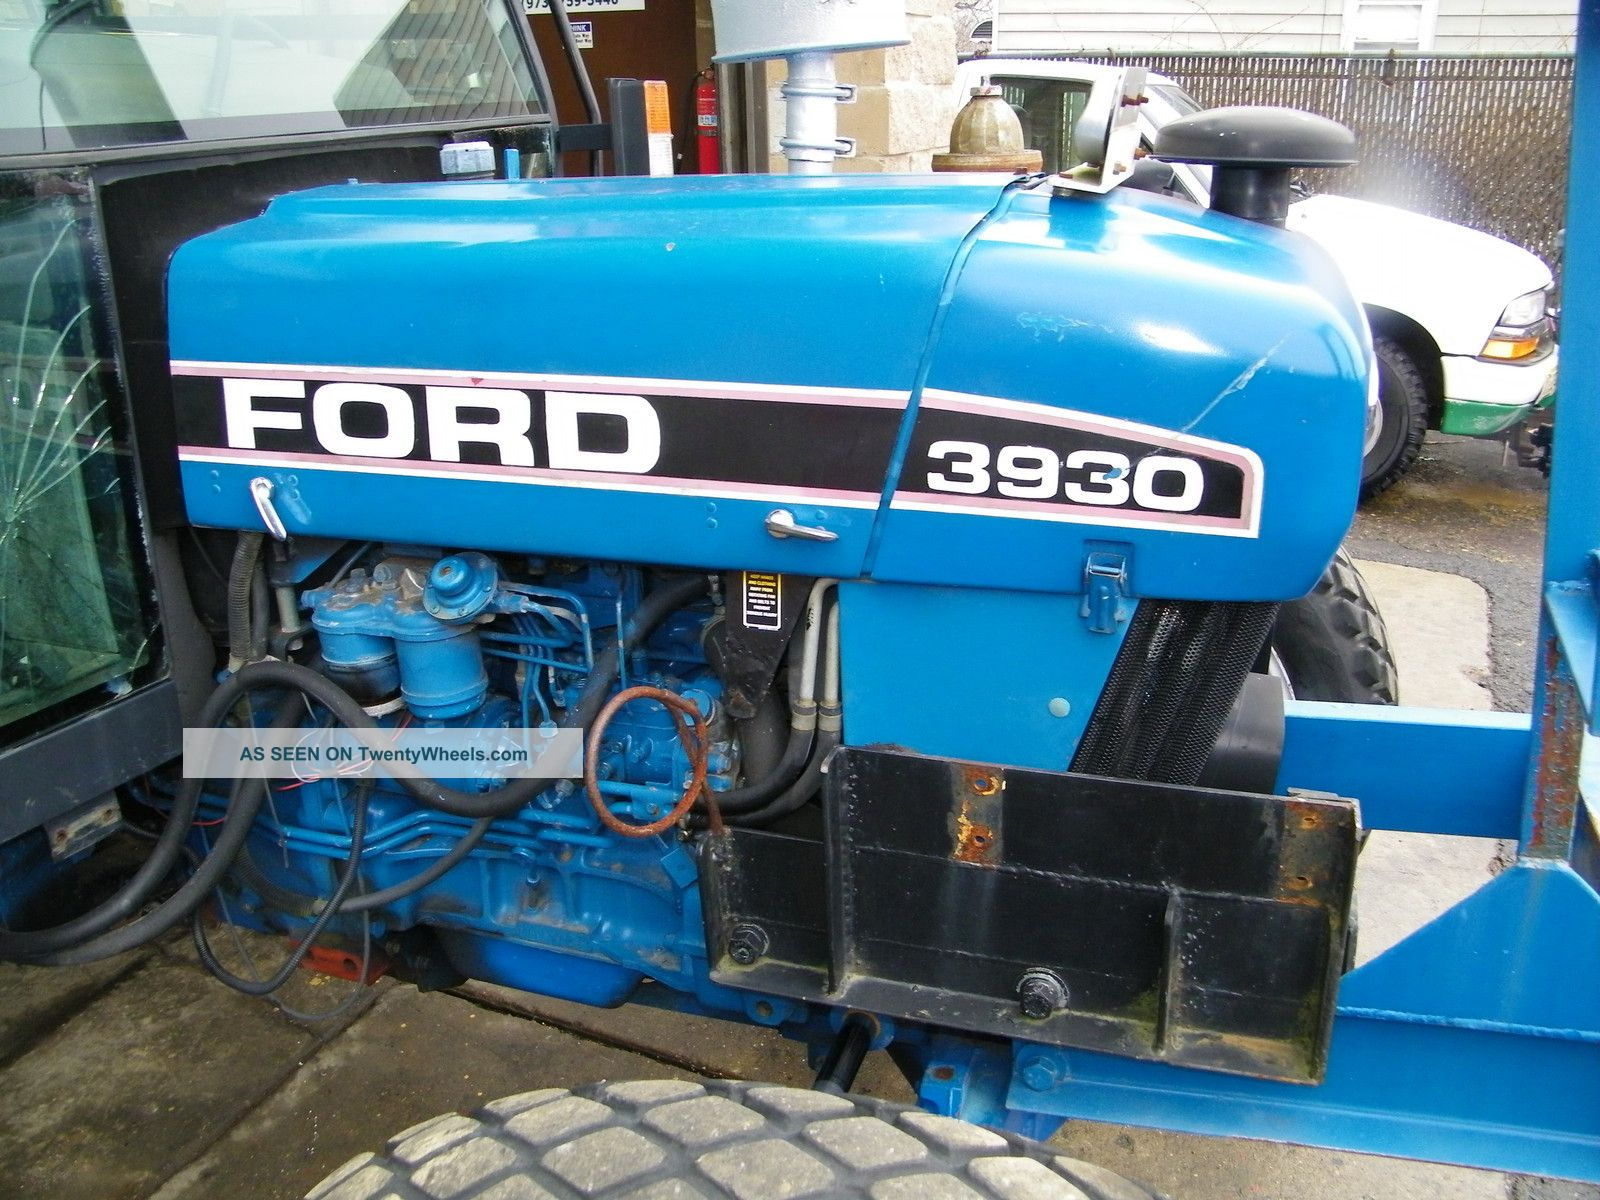 Ford 3930 Tractor Filters